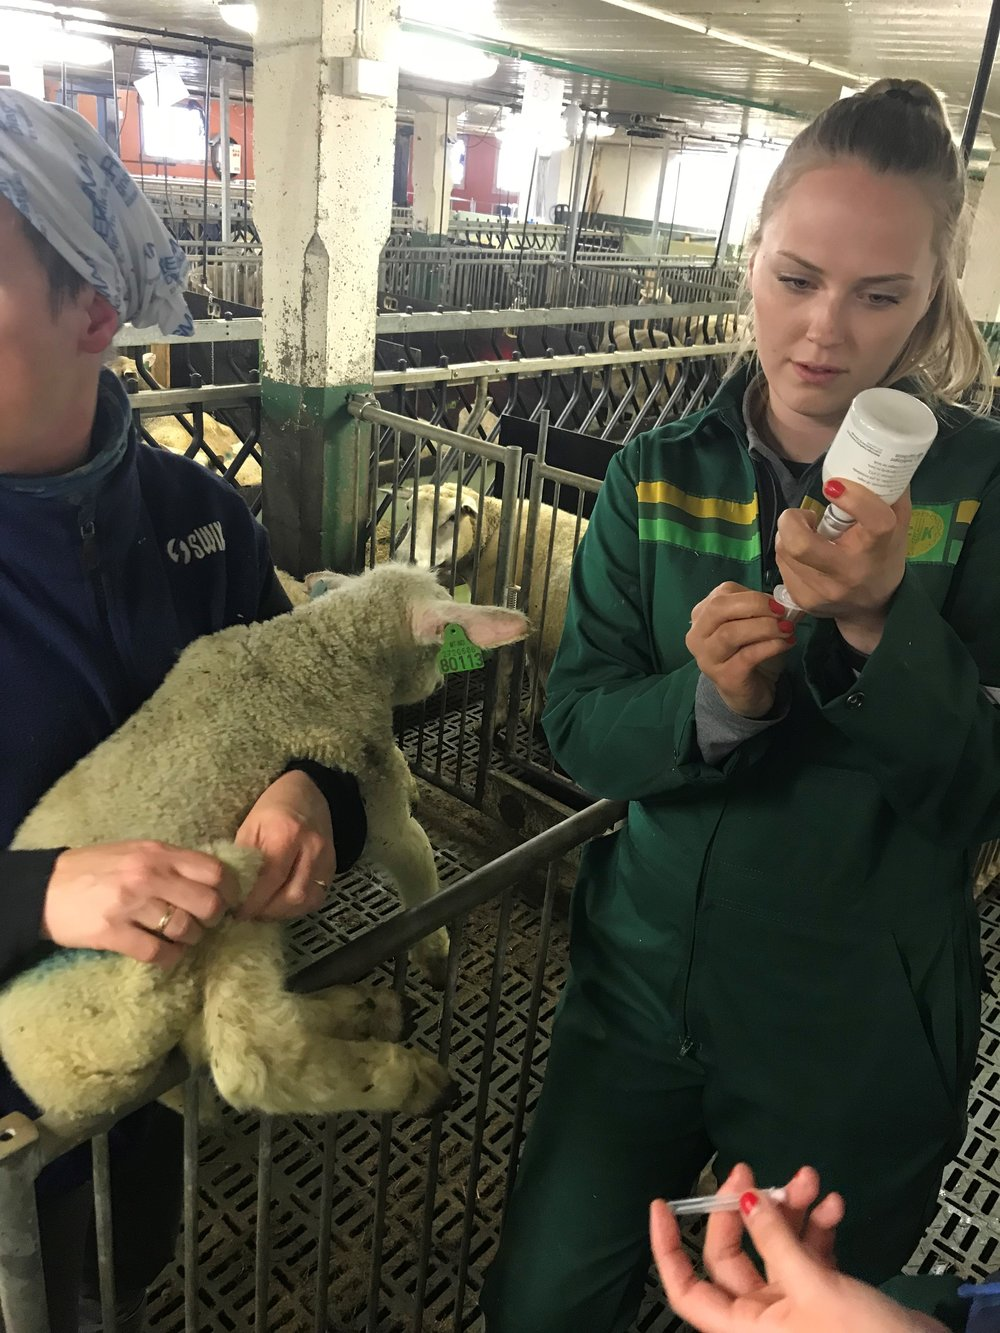 Johanne administering penicillin to one of the lambs